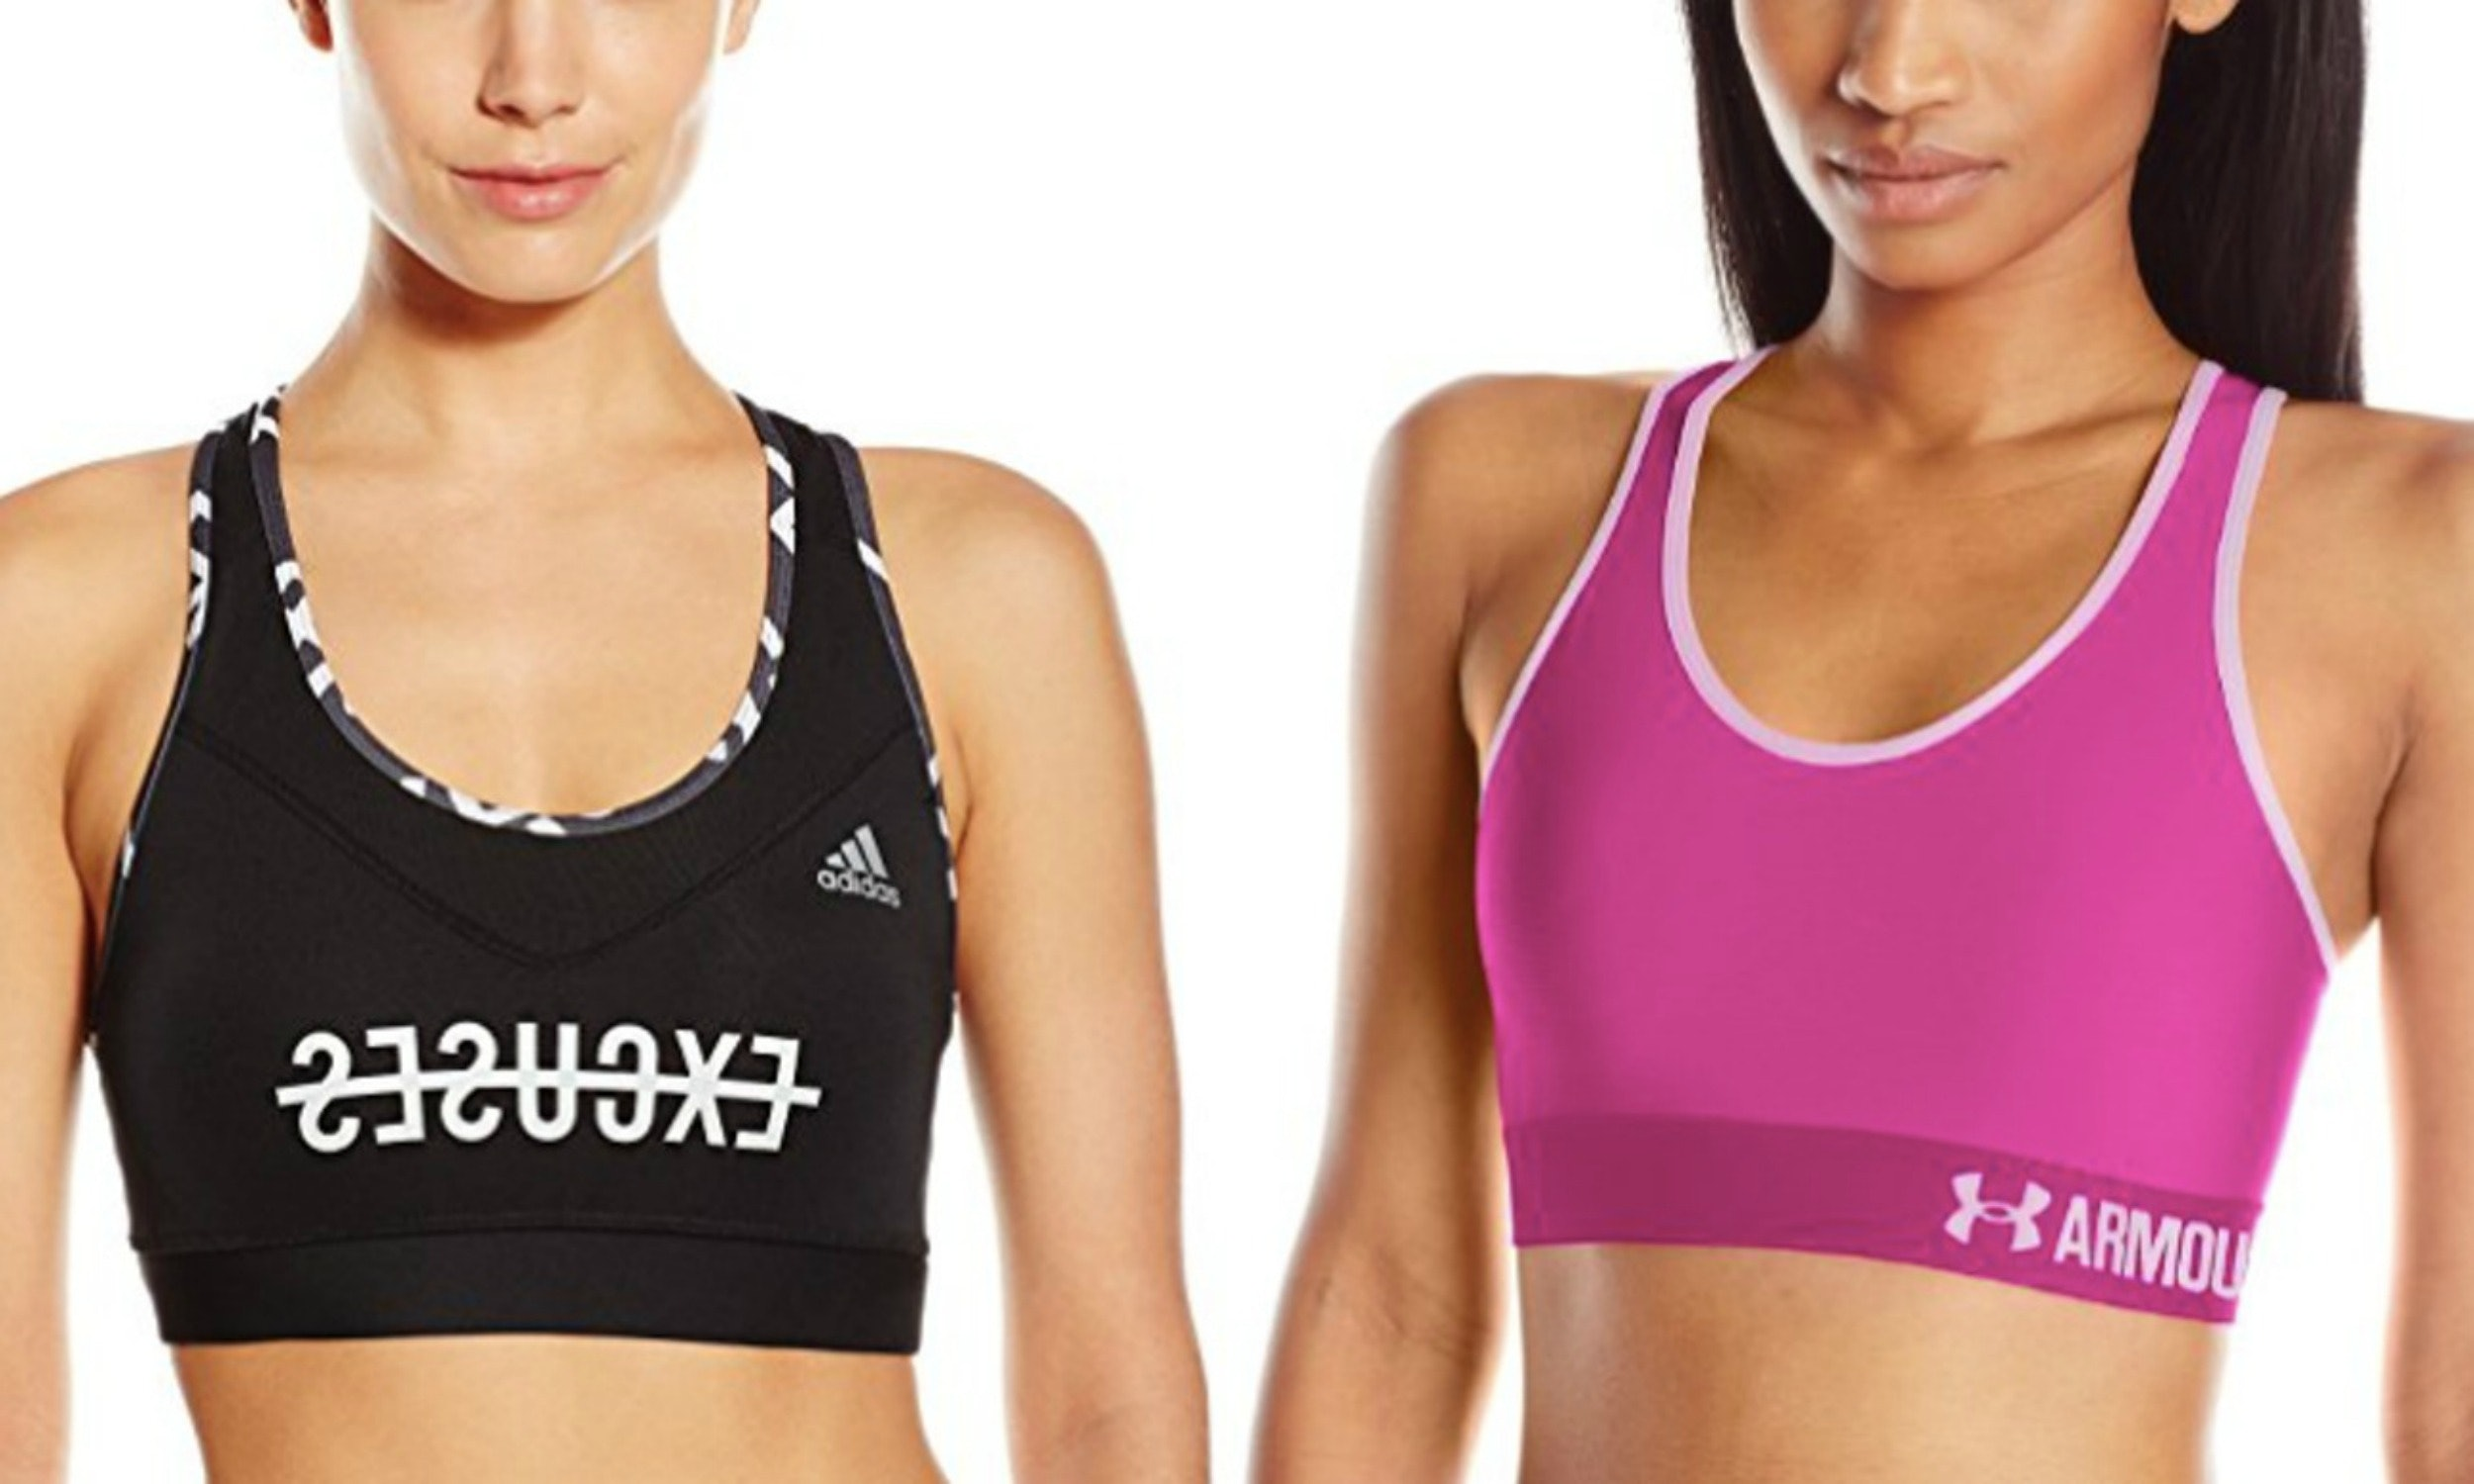 47db2d6932206 8 Sports Bras Without Padding That Are Cute And Comfortable